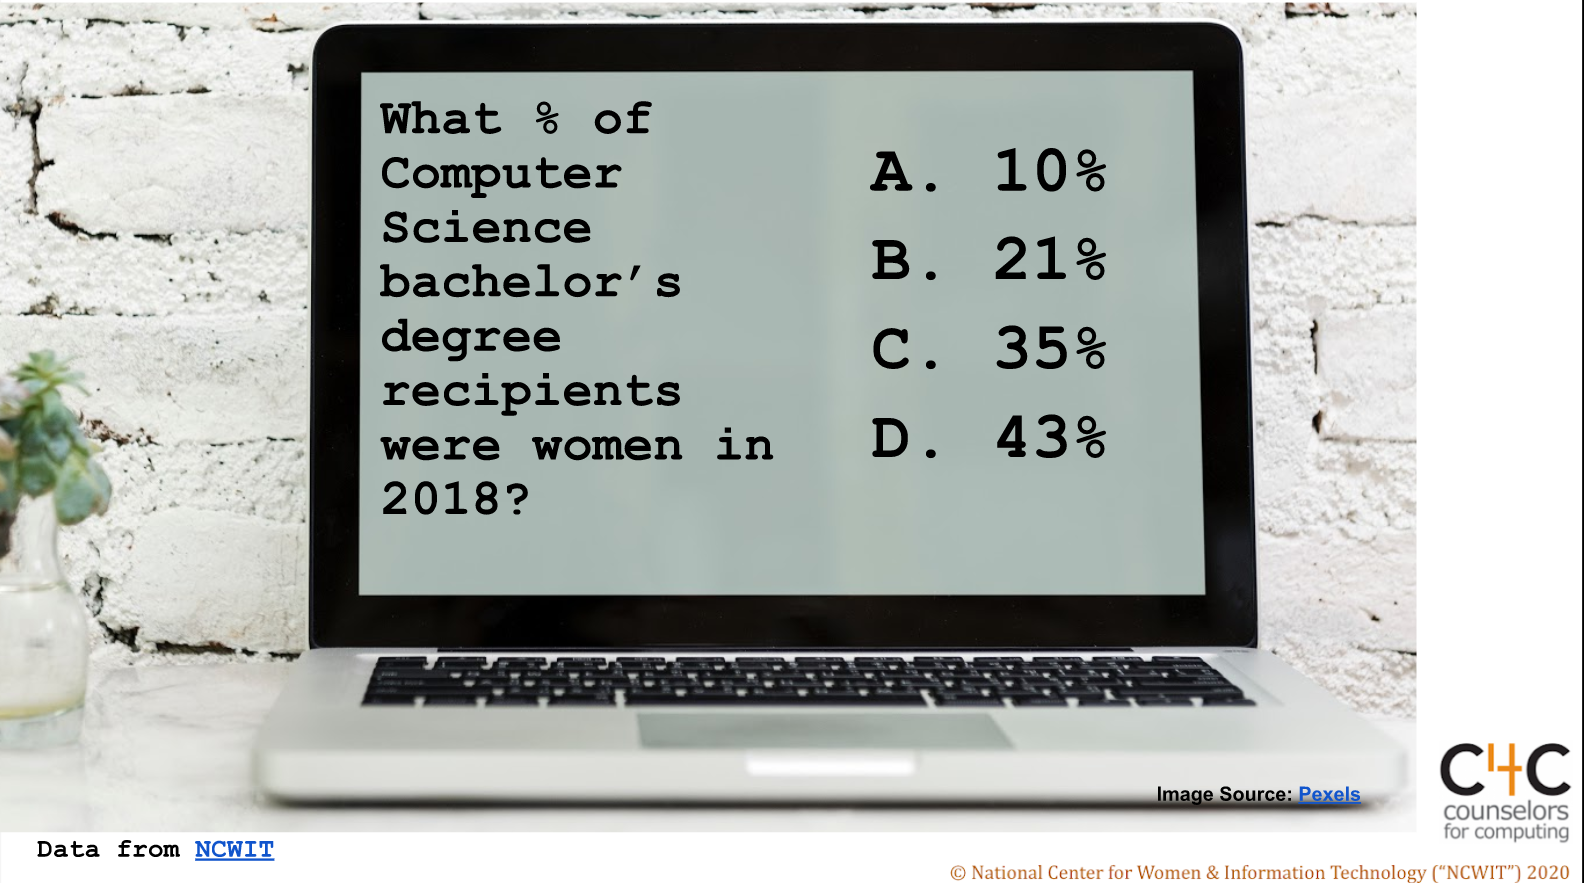 What % of Computer Science bachelor's degree recipients were women in 2018?